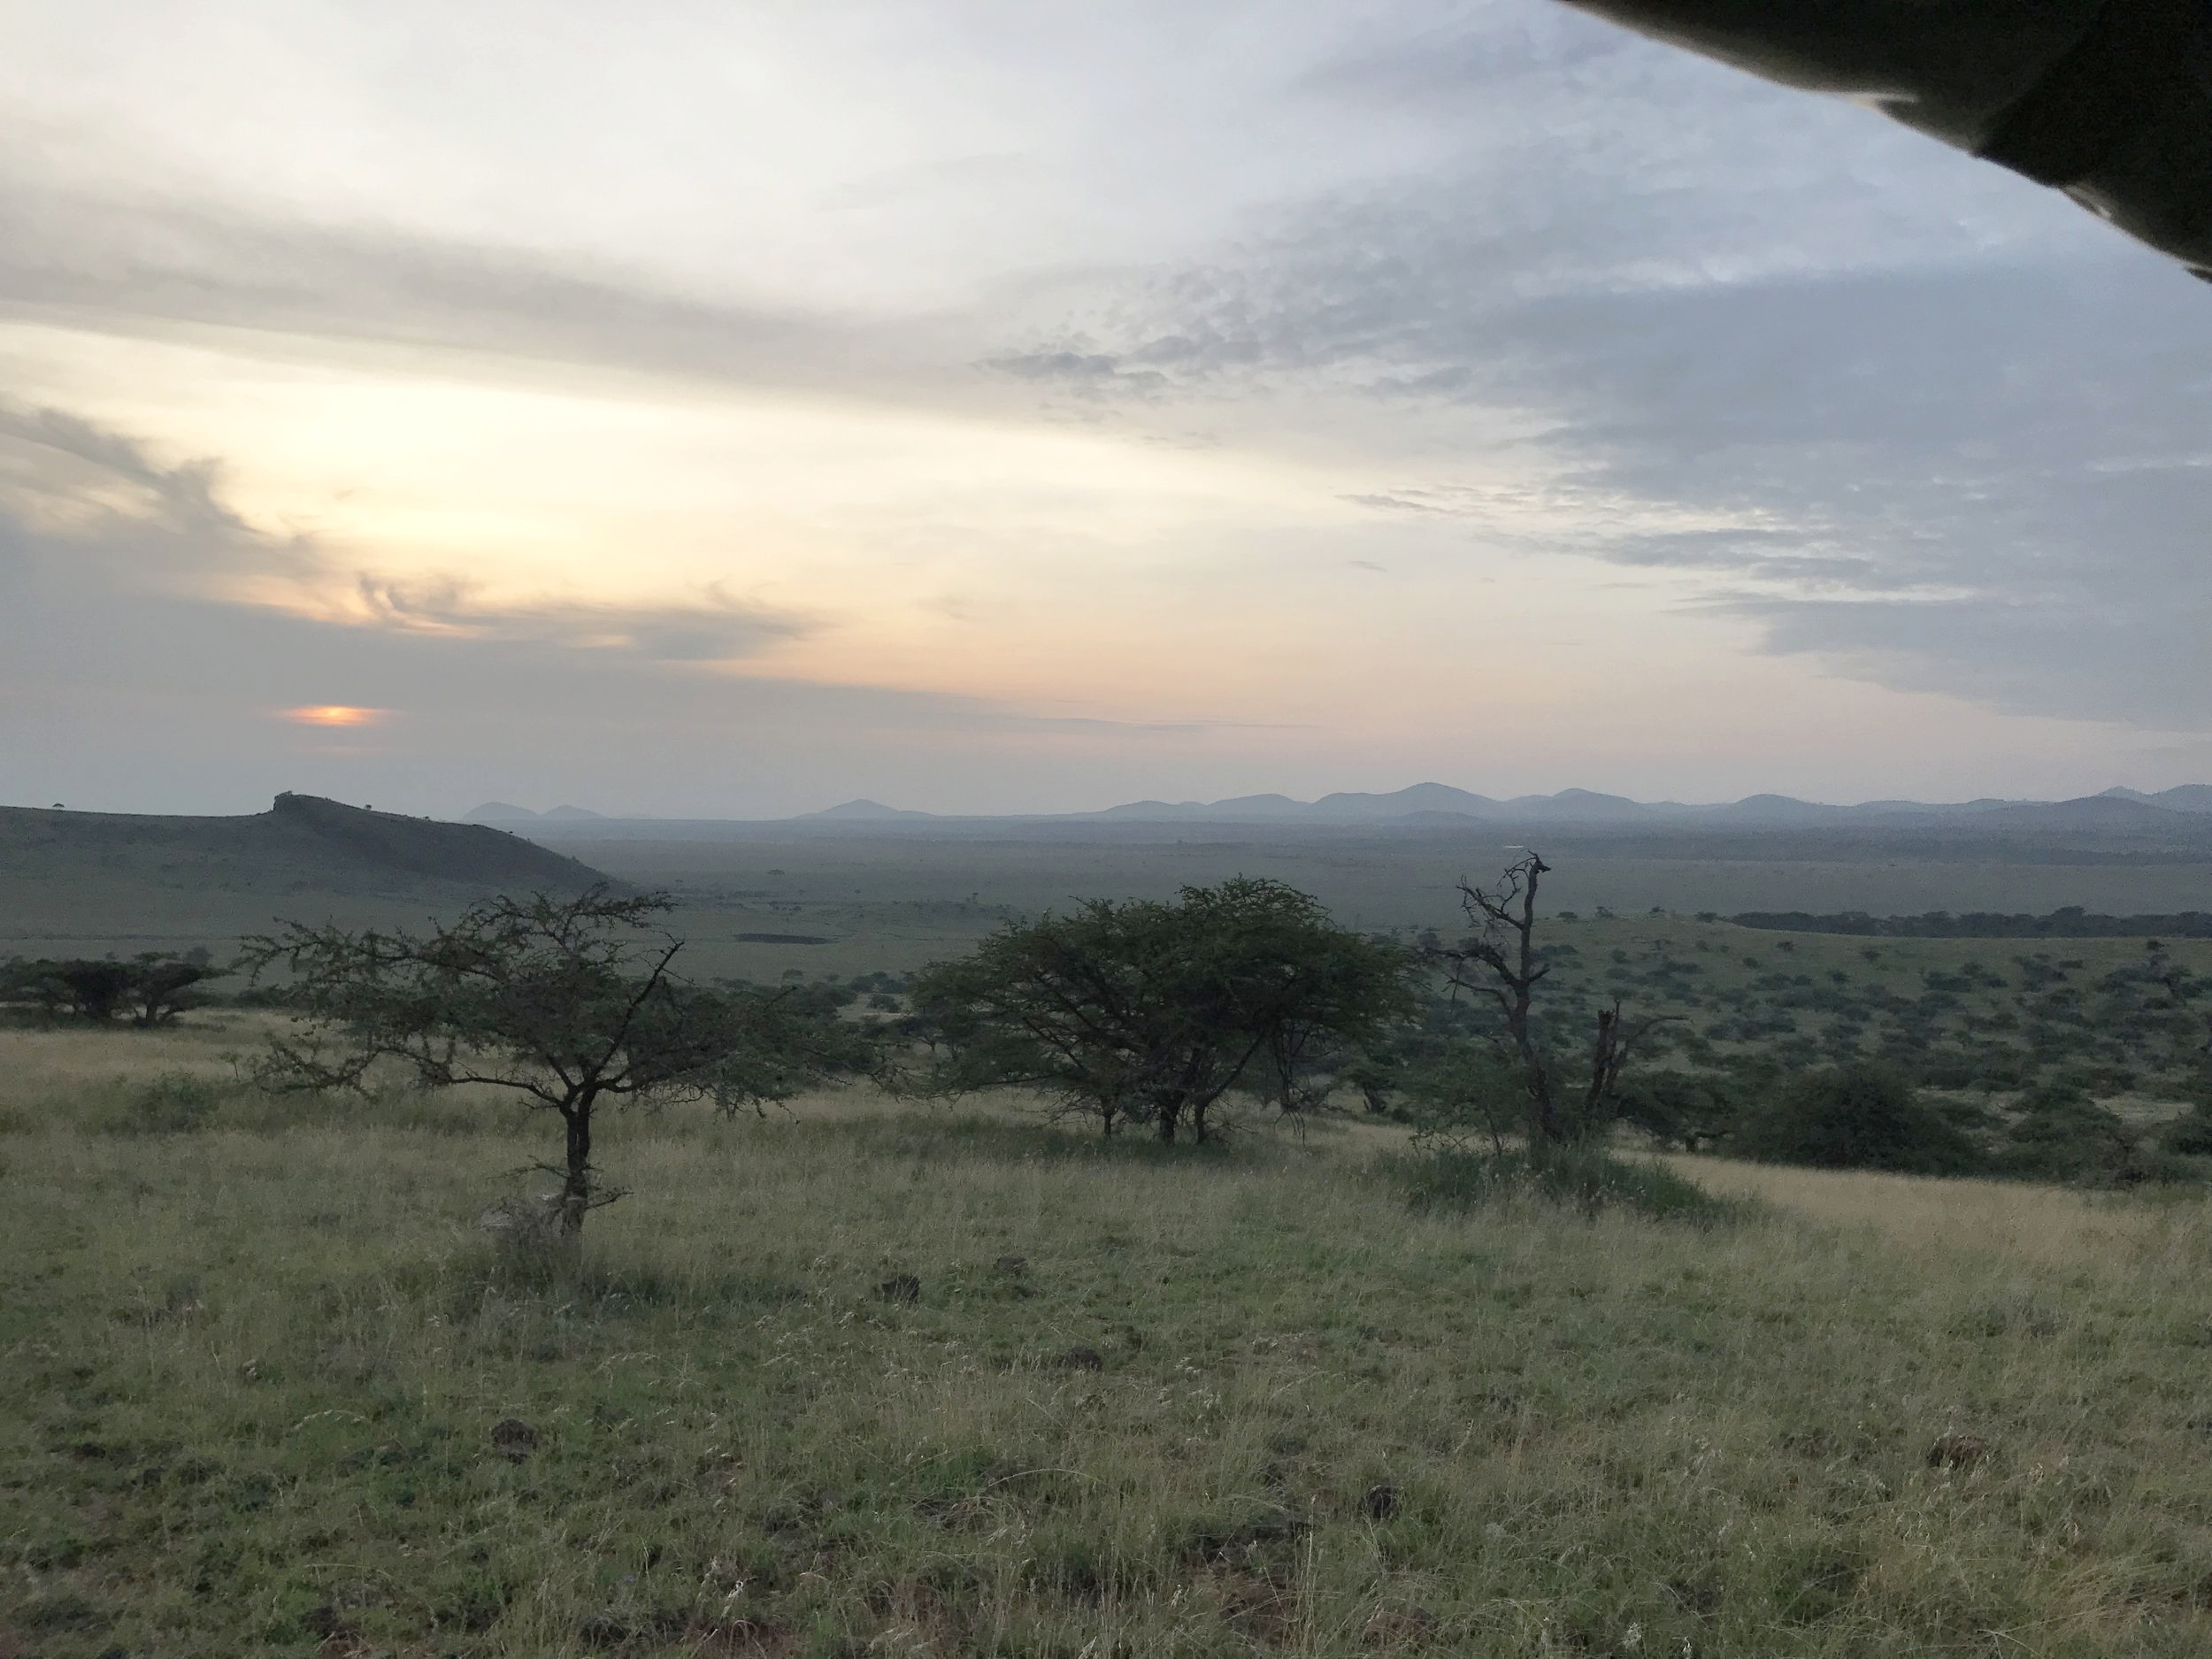 Sunrise view from the vehicle